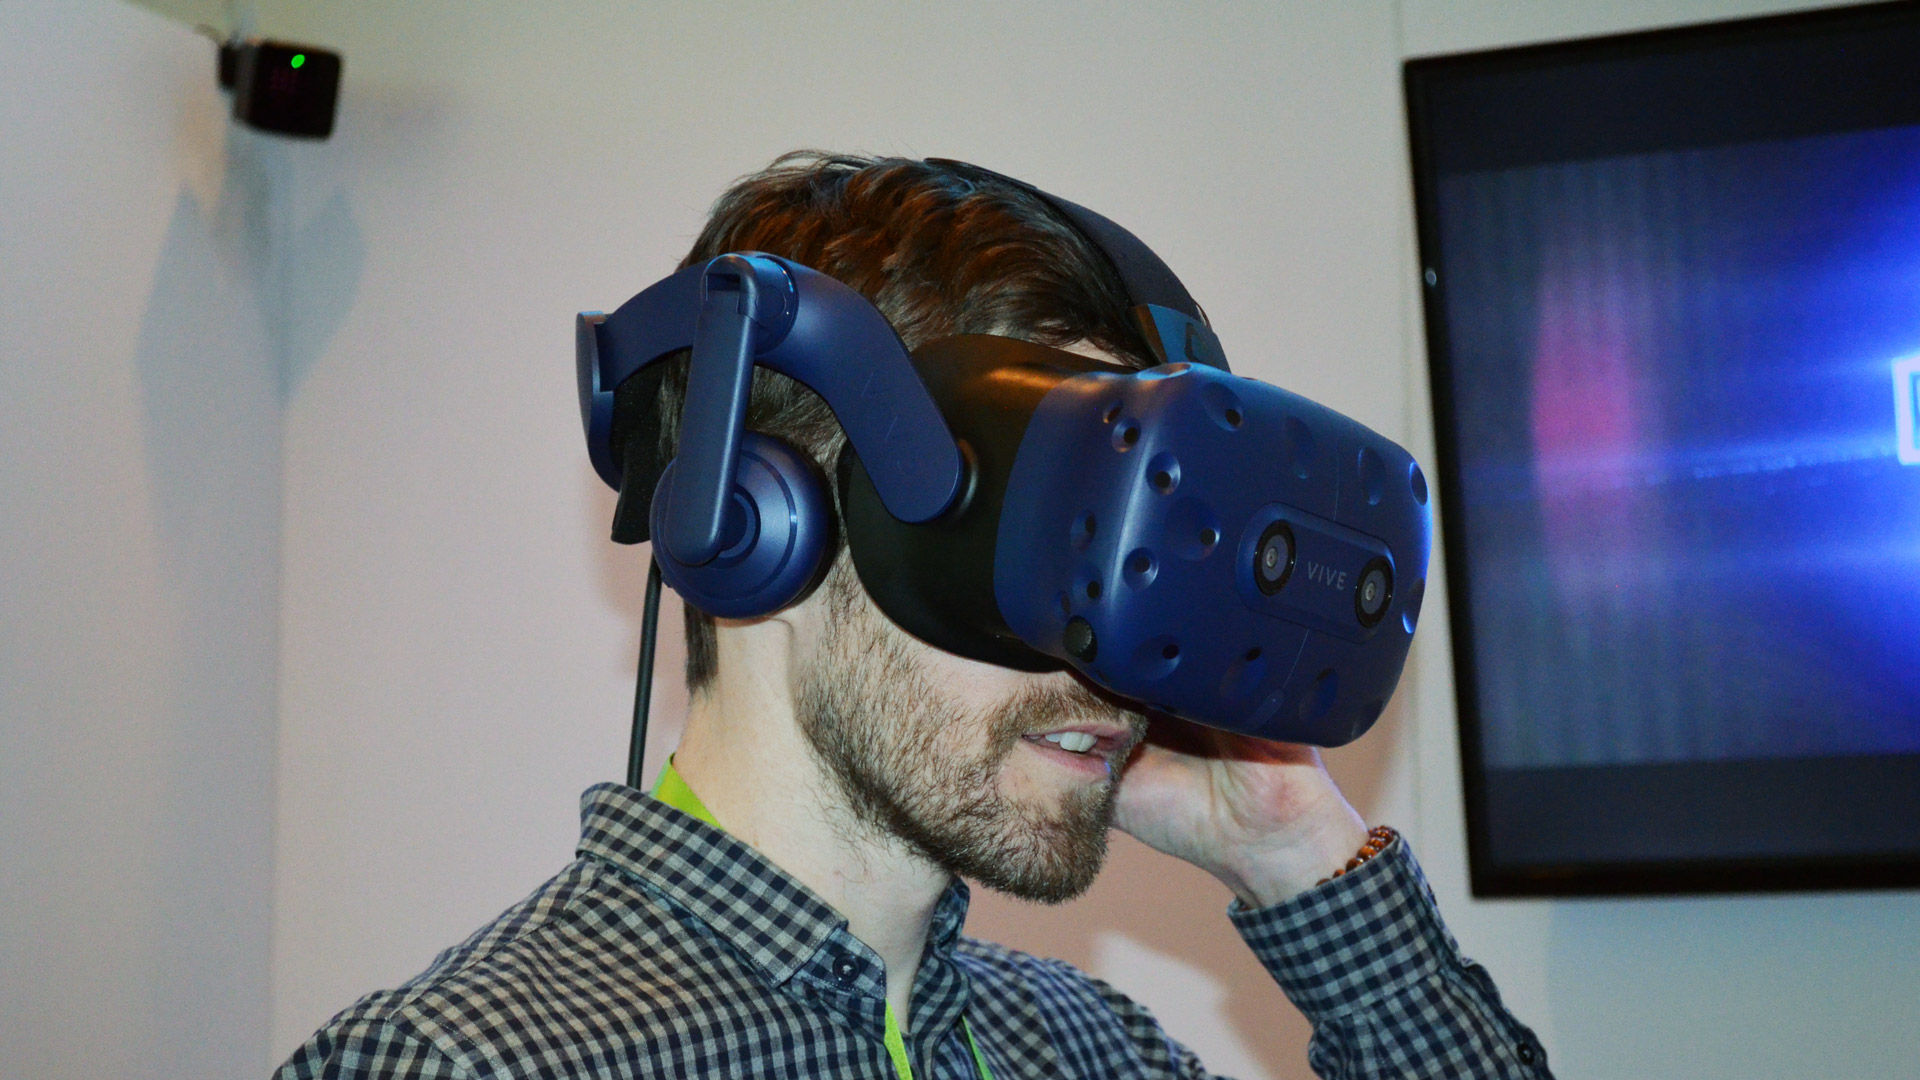 79342ad51be CES 2018 - Hands-on  The Vive Pro is Much More Than an Improved Screen